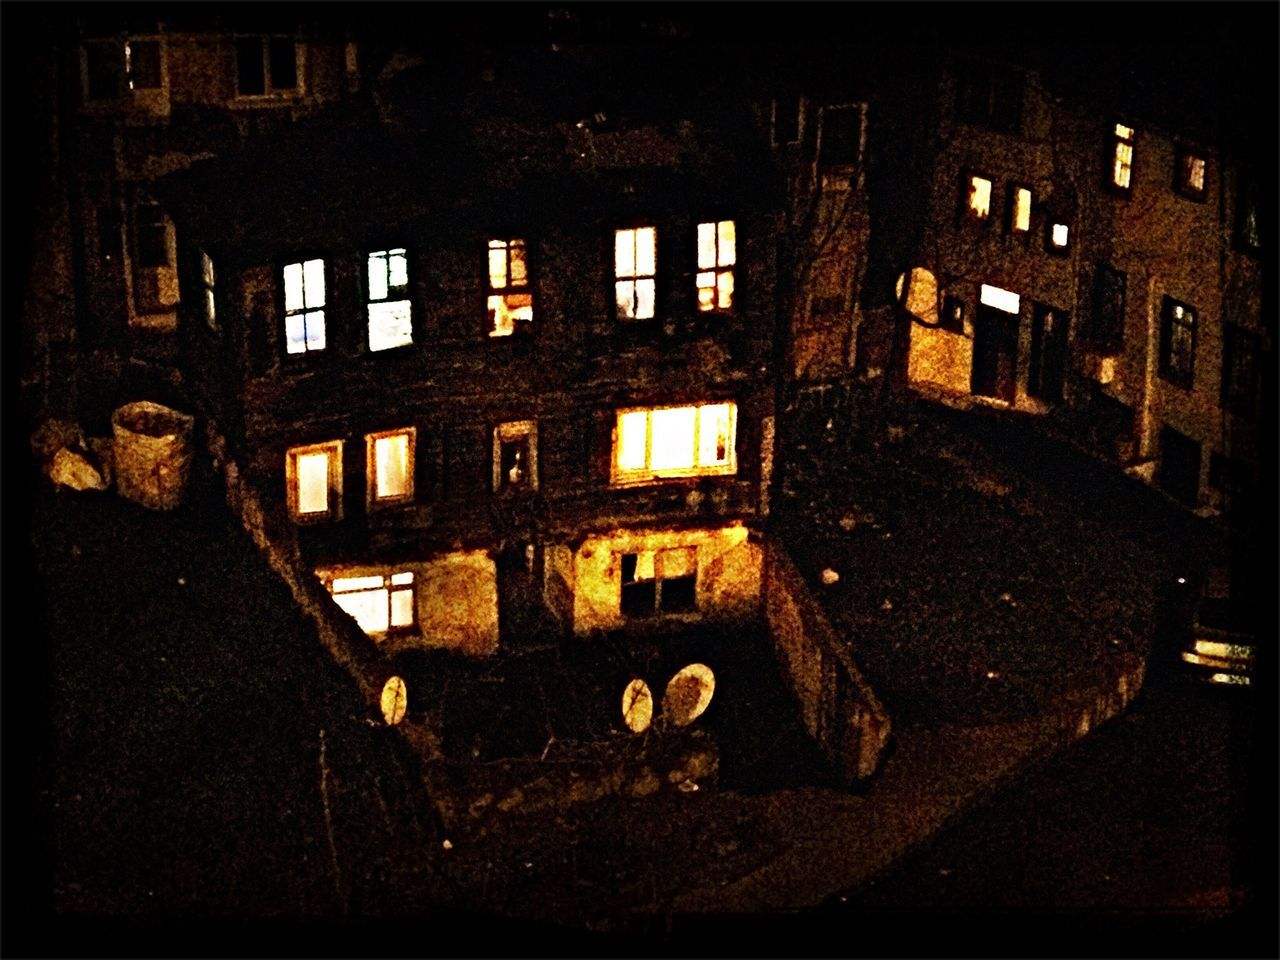 architecture, built structure, window, building exterior, night, no people, illuminated, outdoors, city